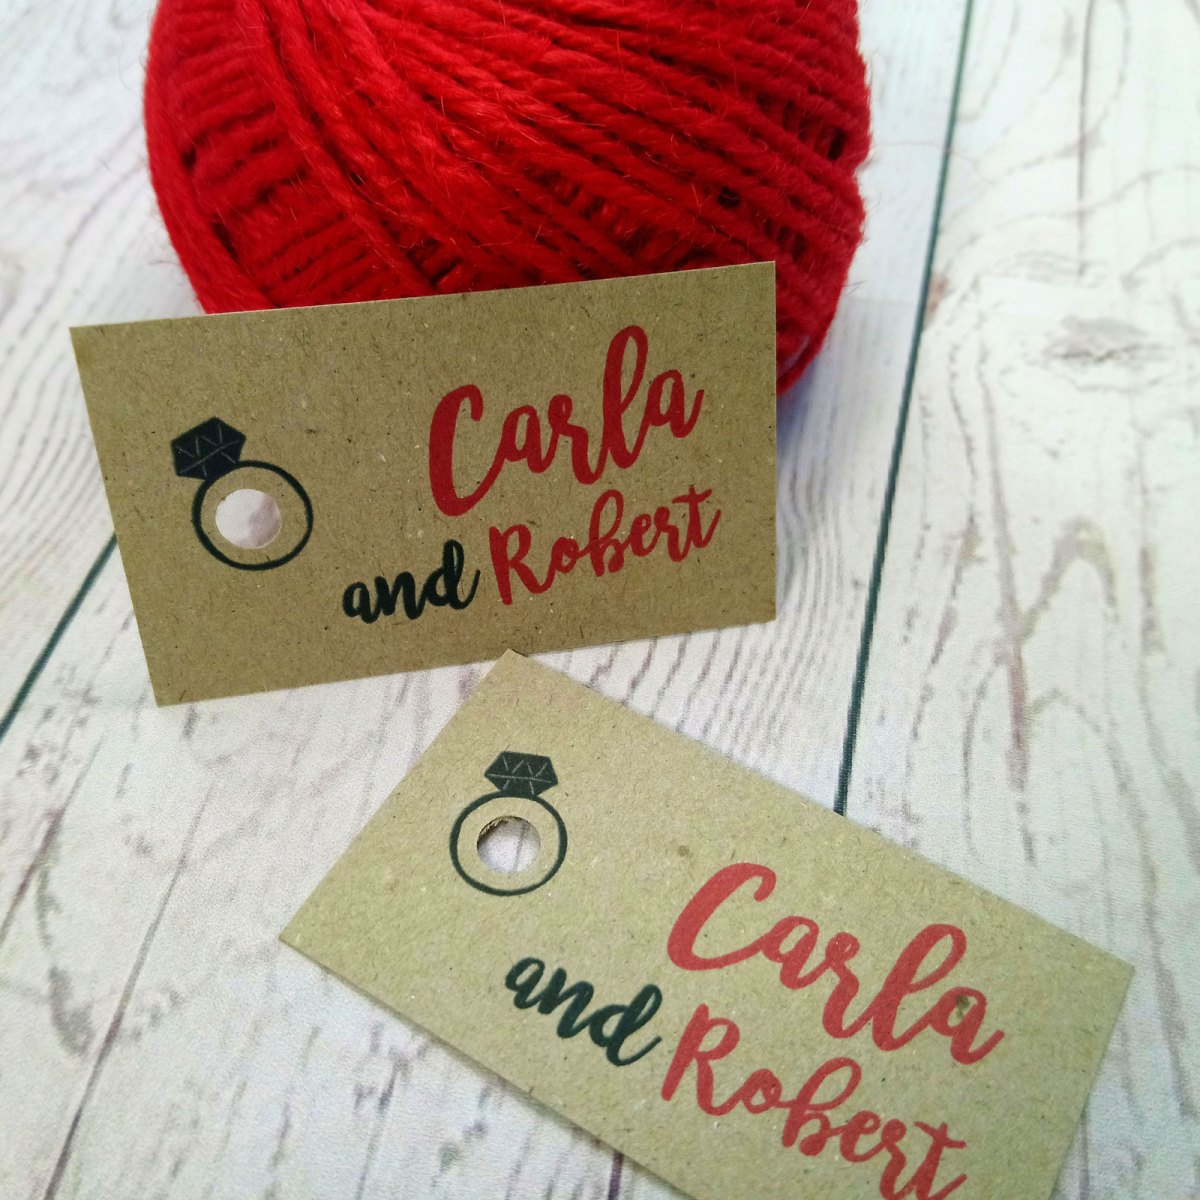 Photo Booth Wedding Tags with hole punch detaild of a wedding ring and bride and groom's names in red